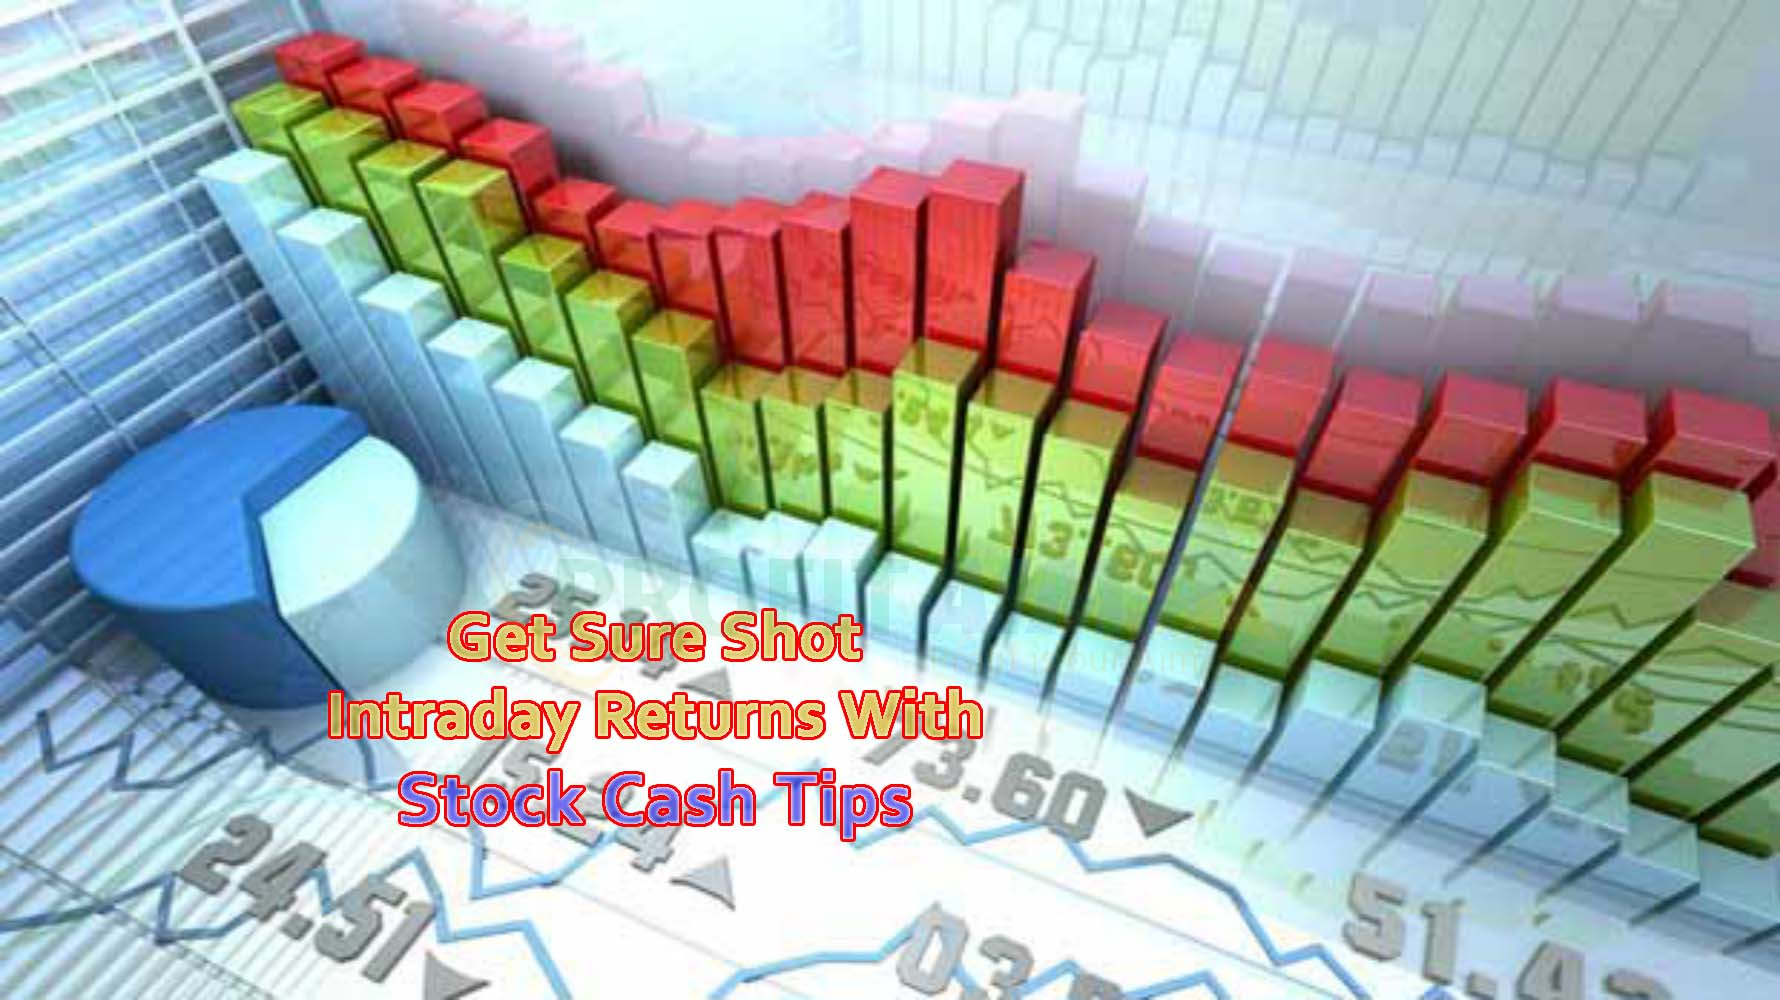 Sure Shot Intraday Returns with Stock Cash Tips